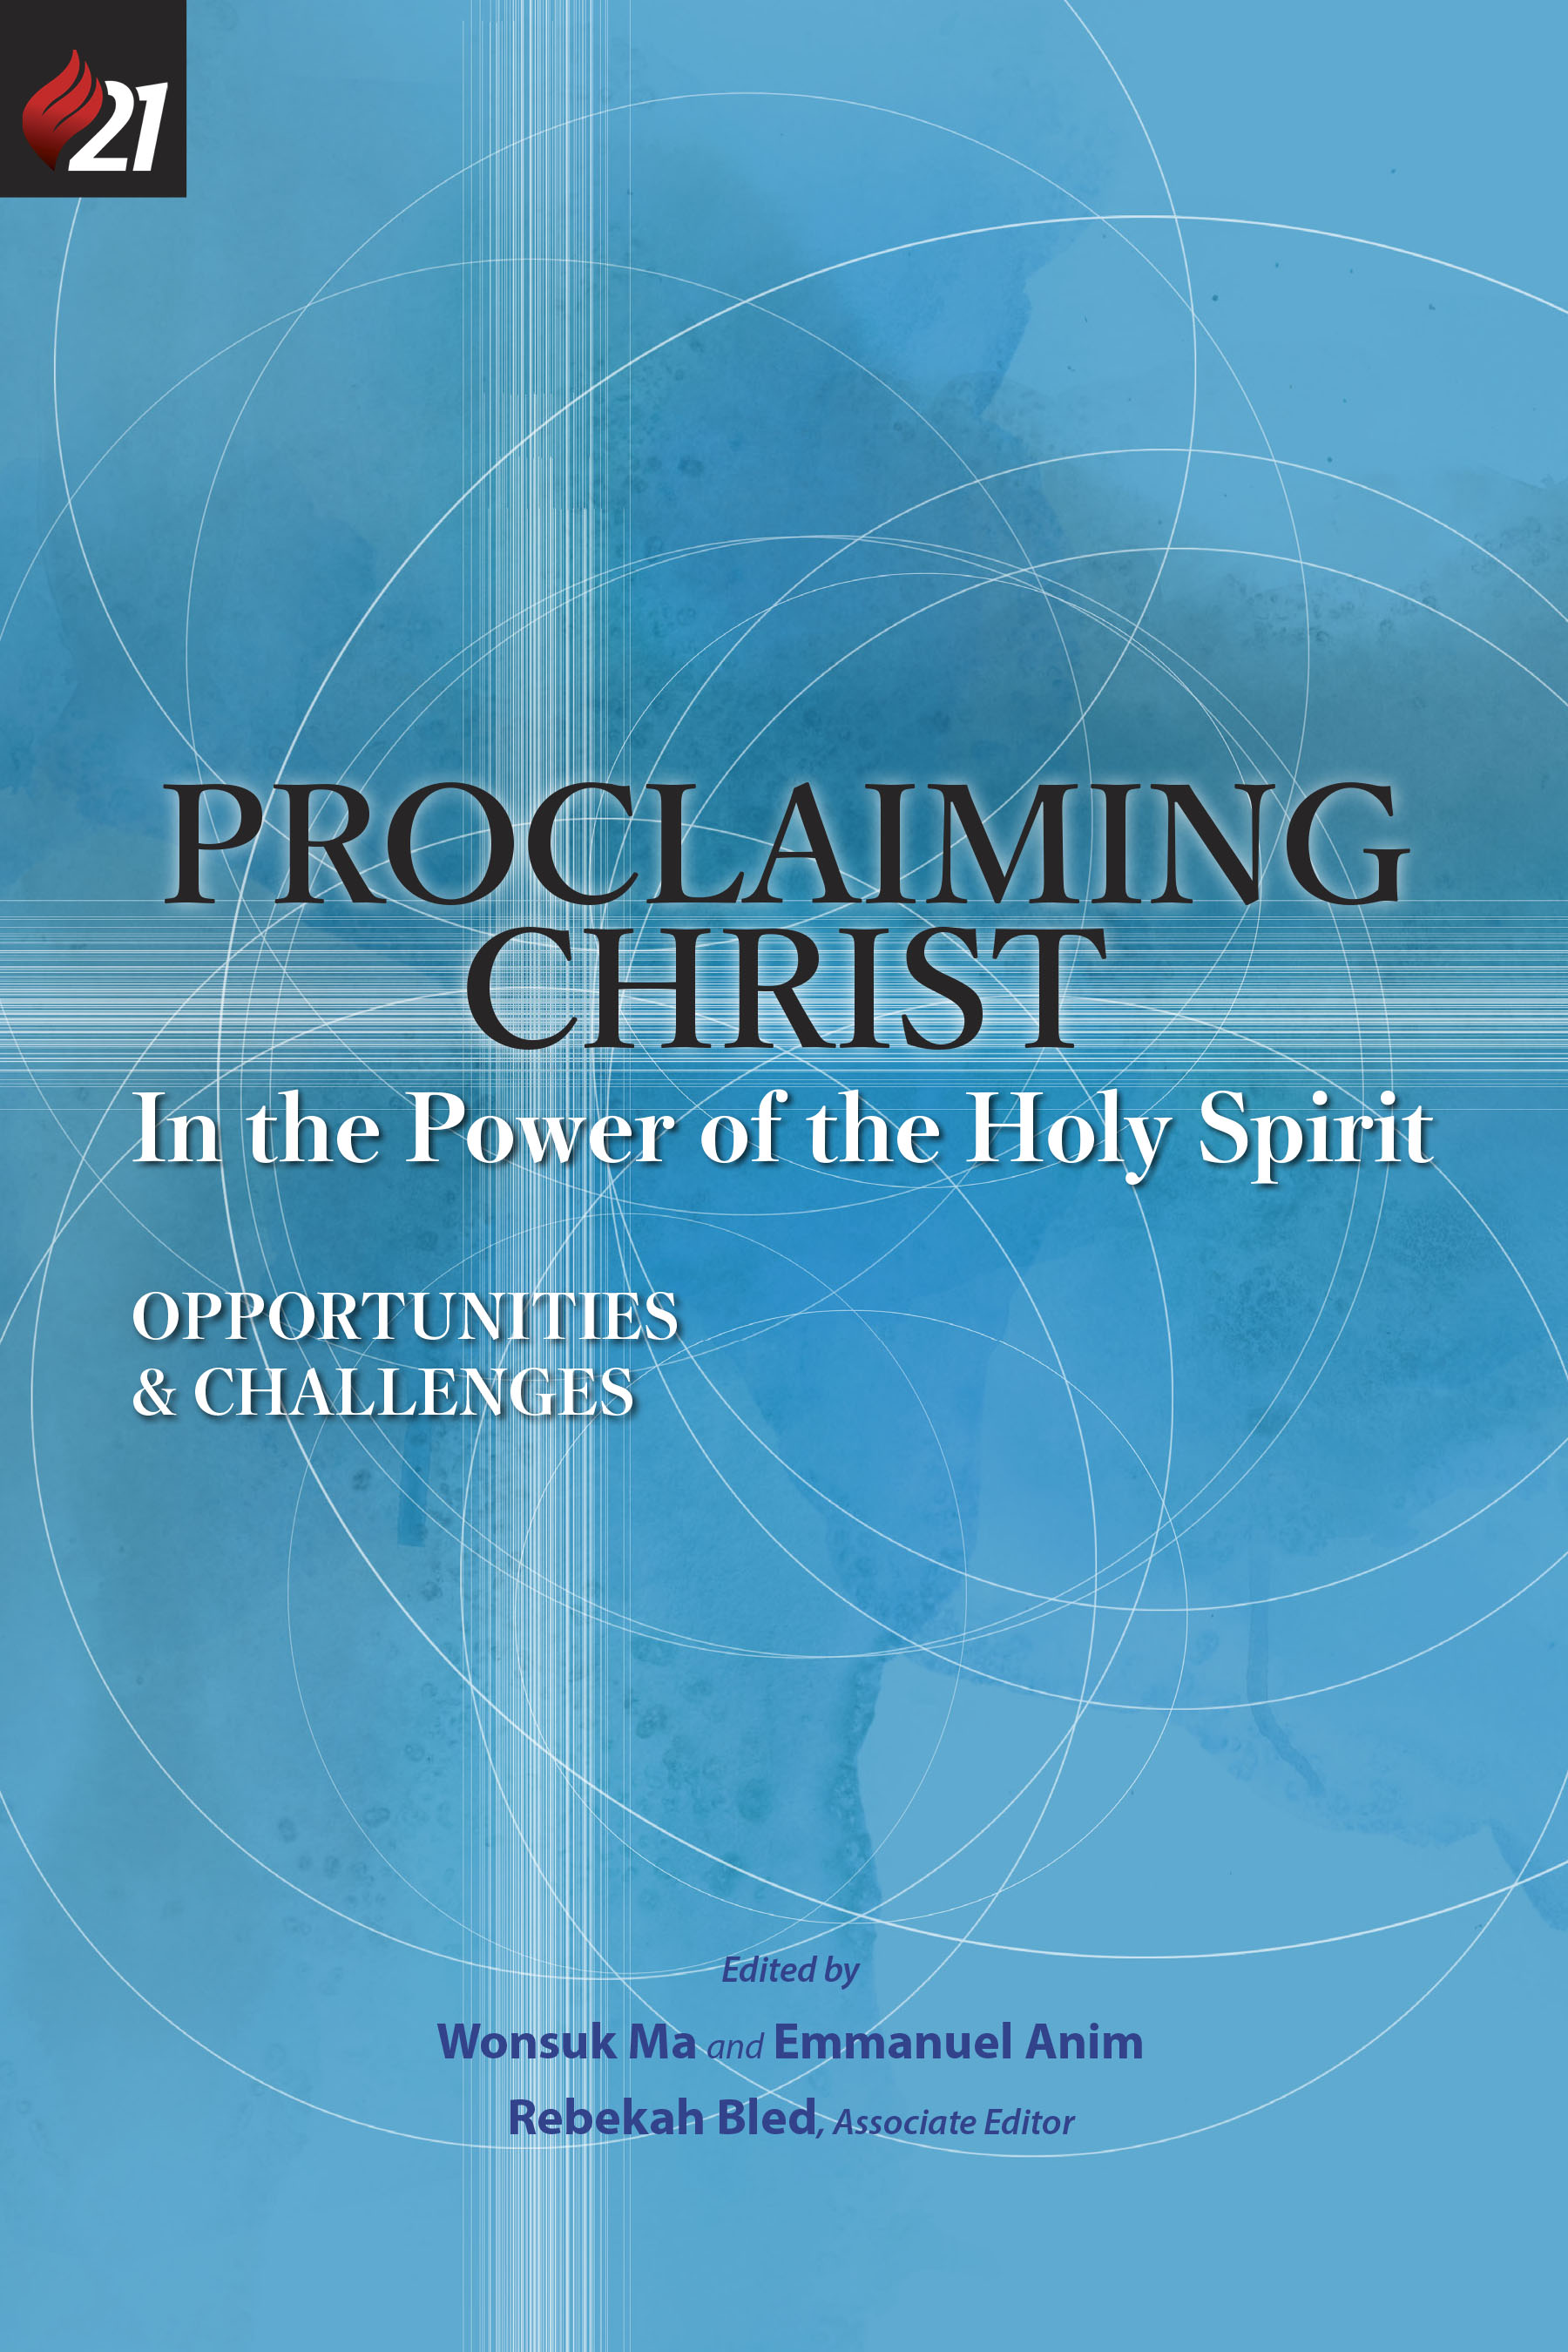 Proclaiming Christ in the Power of the Holy Spirit